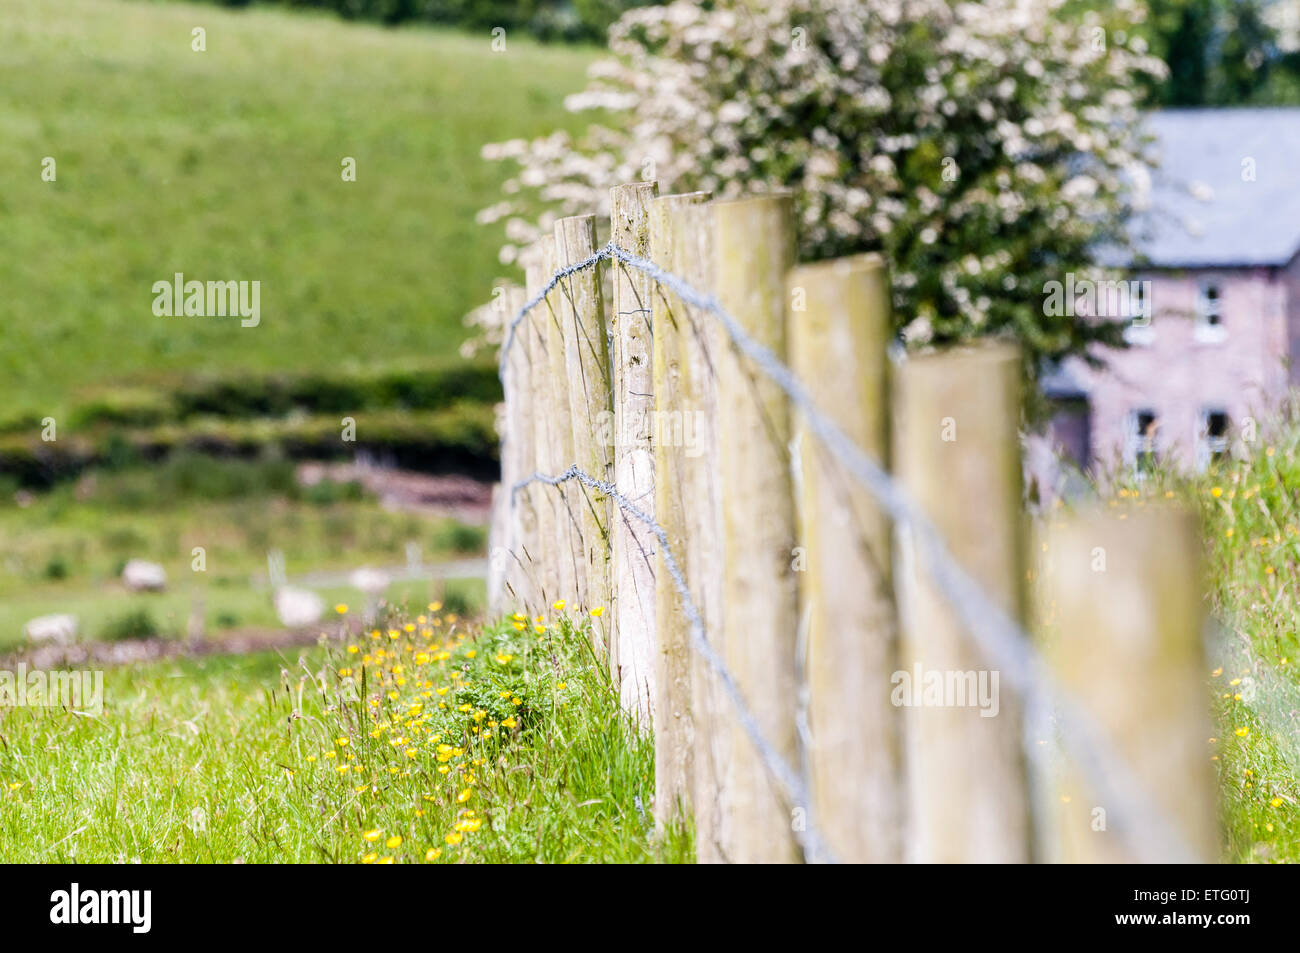 Barbed wire fence and posts in a field in Ireland - Stock Image